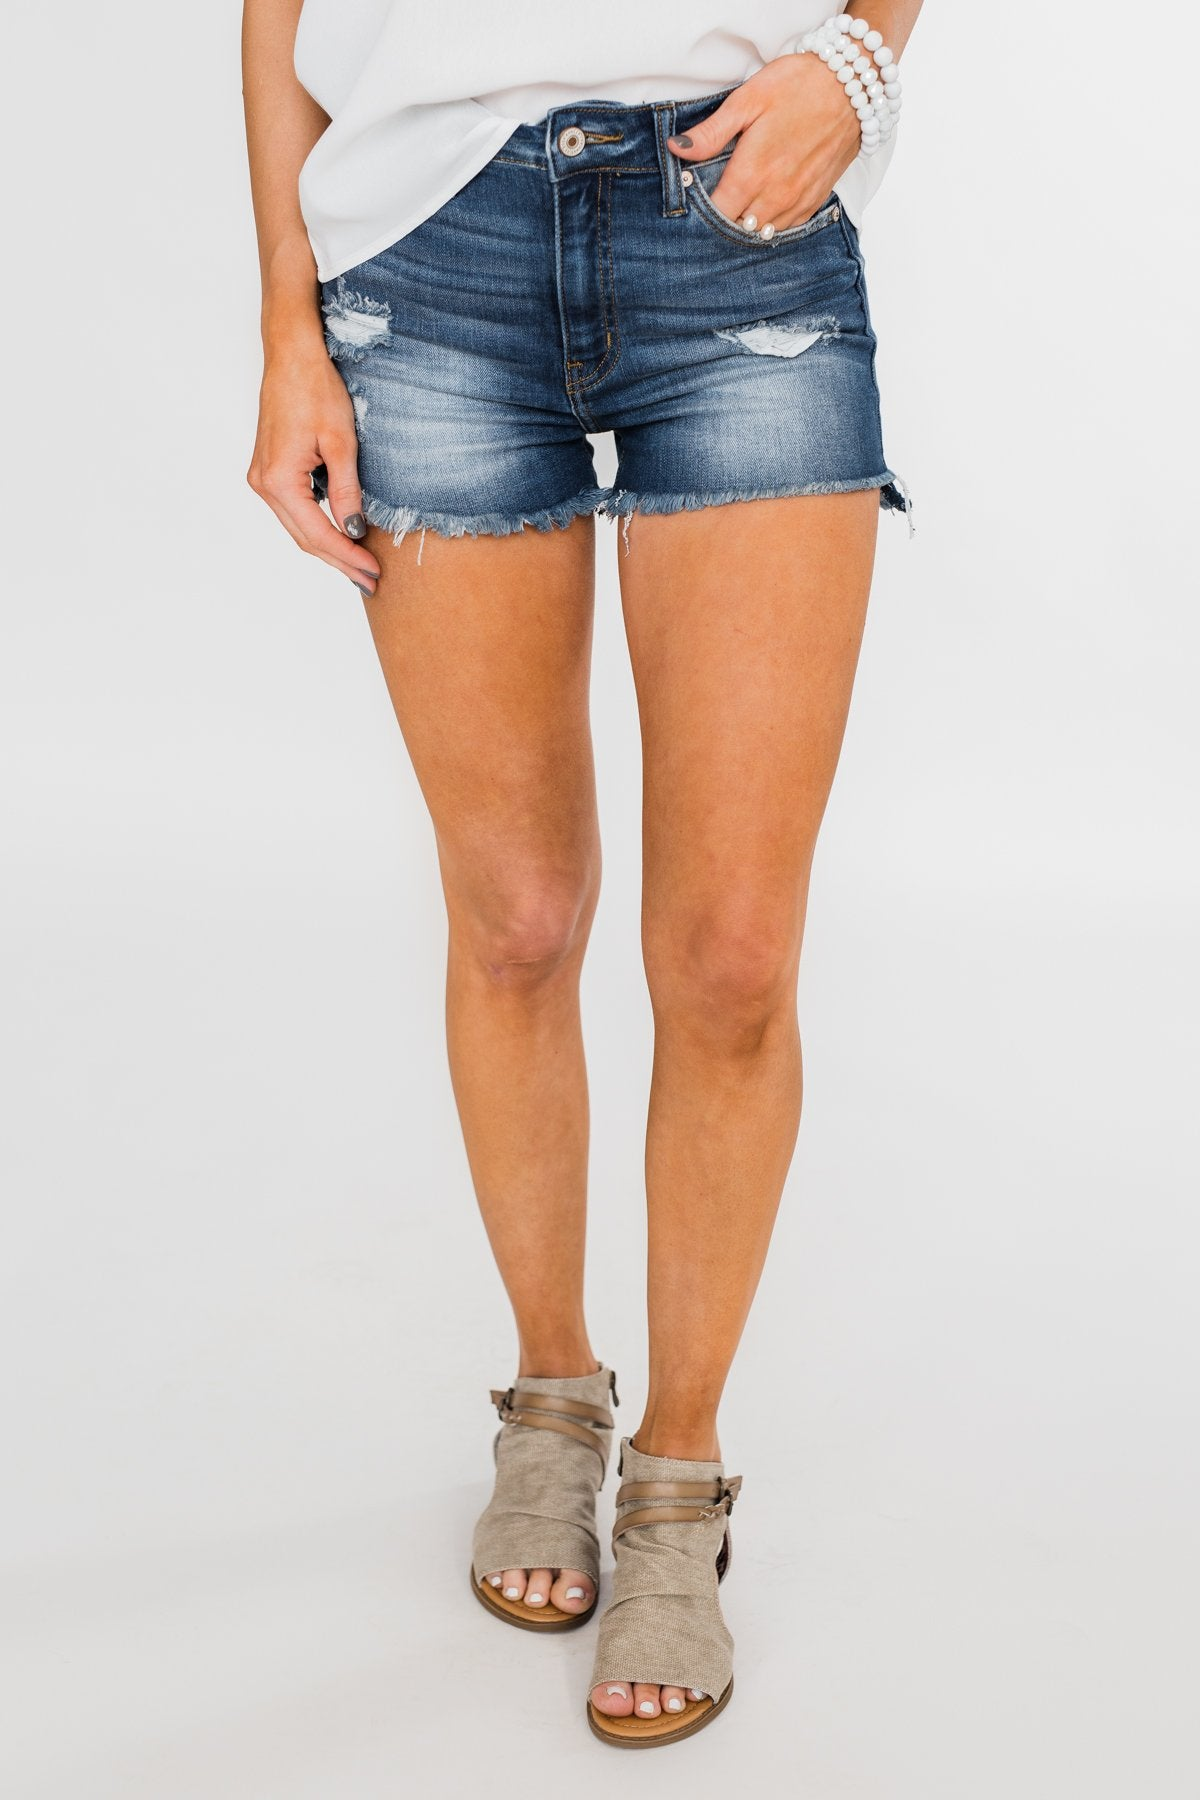 KanCan Distressed Shorts- Hazel Wash